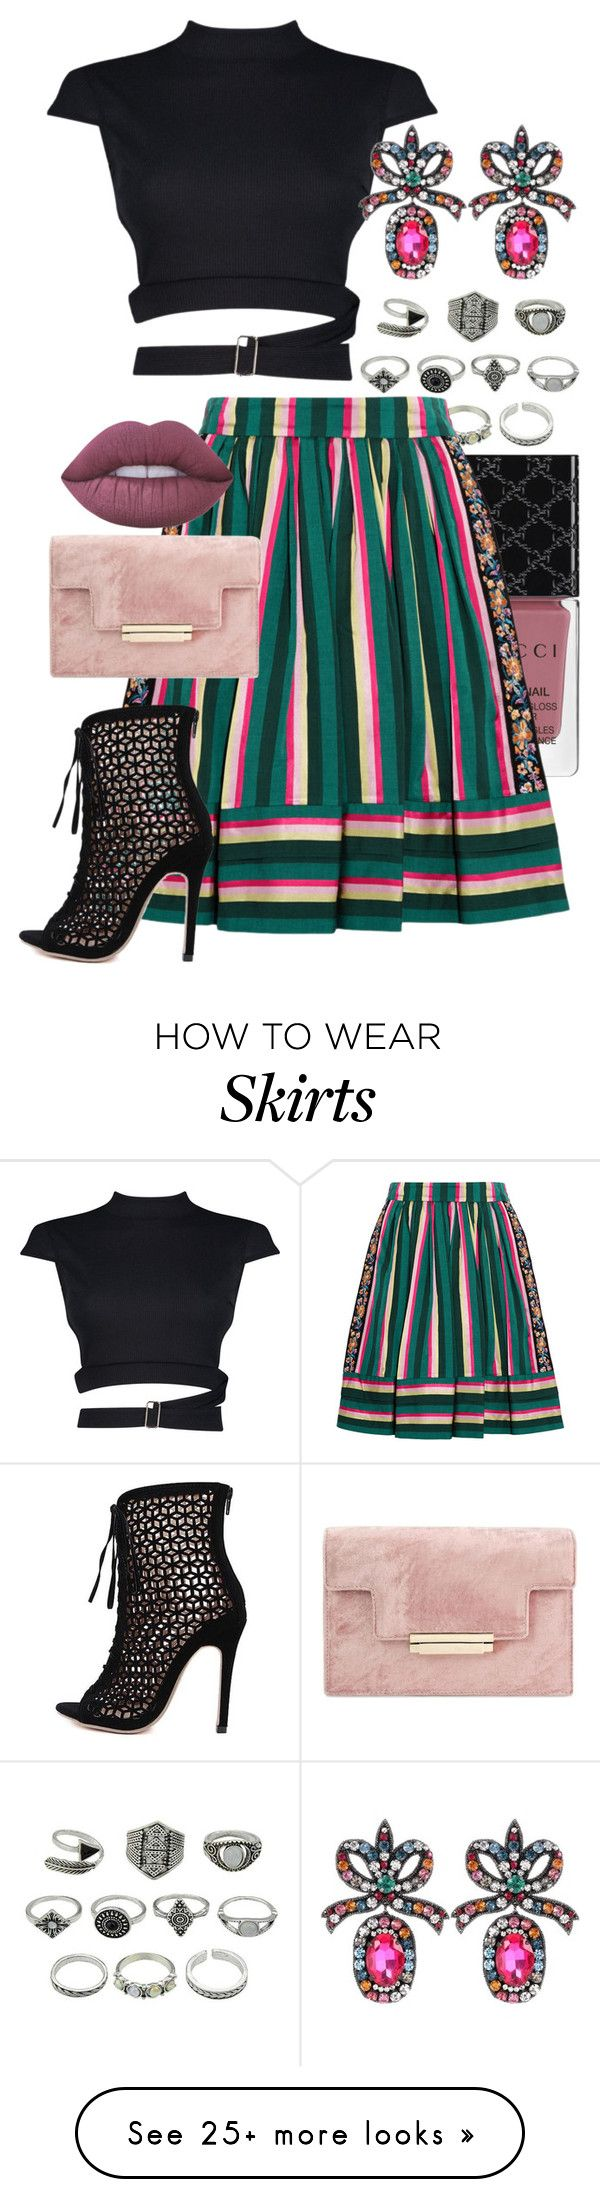 """Striped Skirt"" by jelisaj on Polyvore featuring Gucci, Etro, Boohoo, Lime Crime, outfit and stripes"